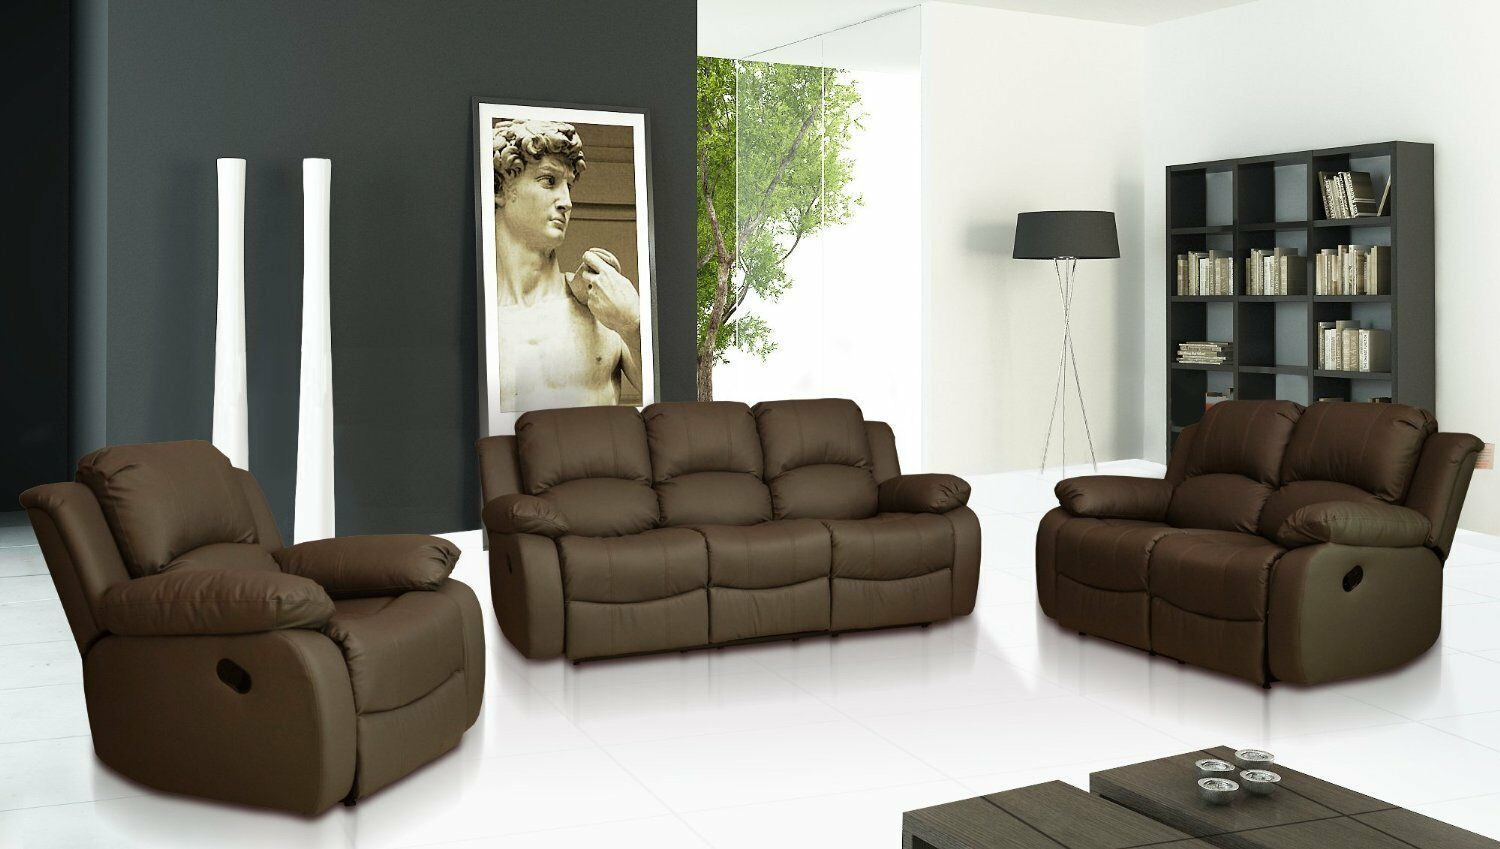 Sofa Set For Sale Ebay Valencia 3 432 431 Seater Leather Recliner Sofas Black Brown